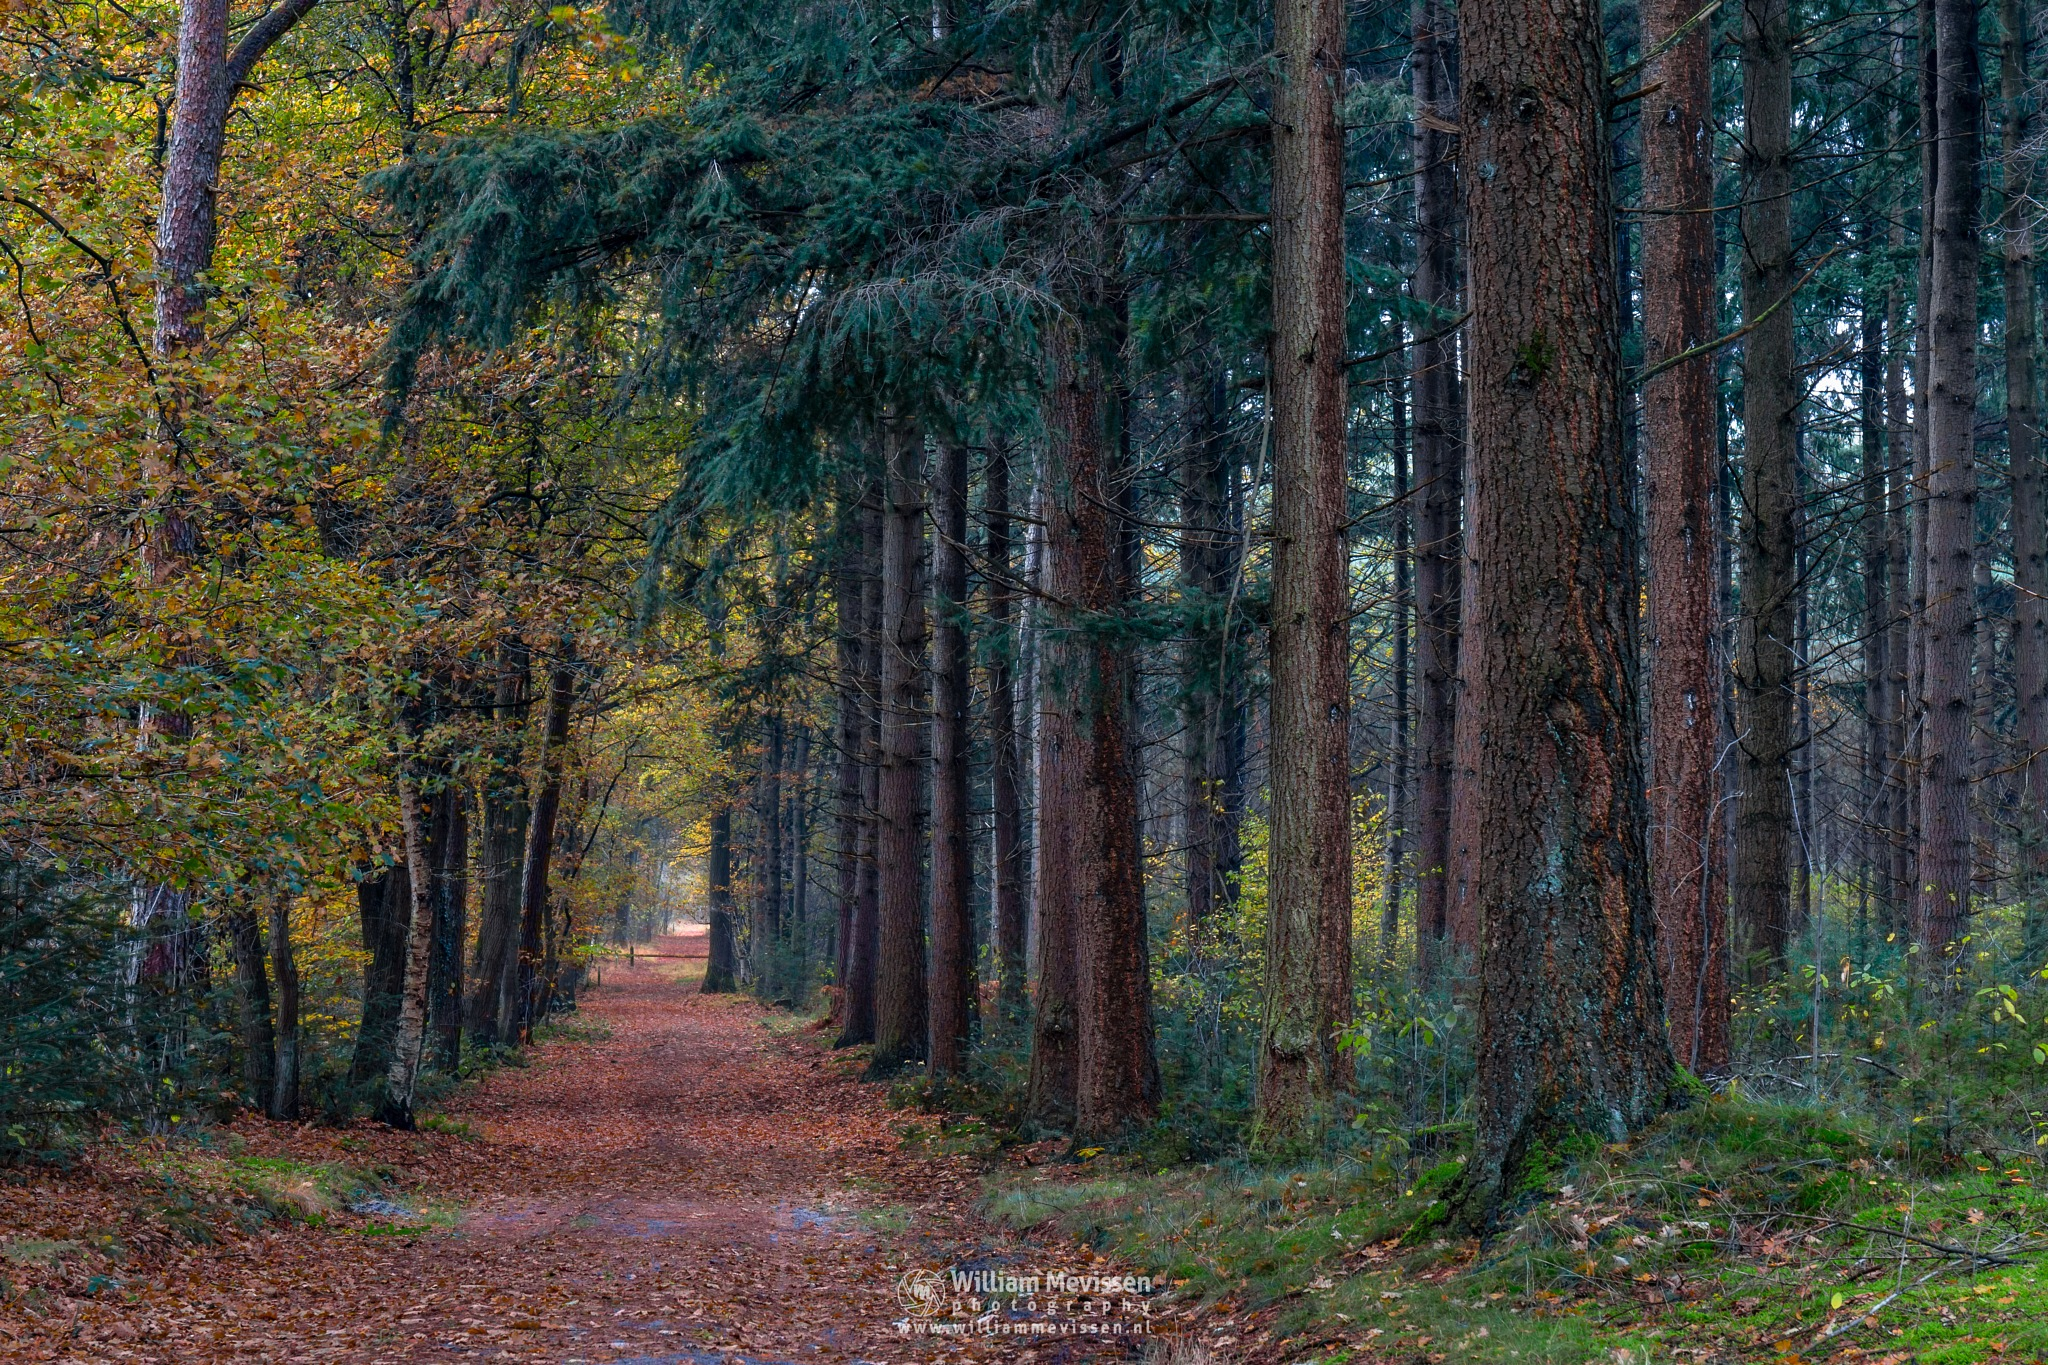 Fall In The Forest by William Mevissen